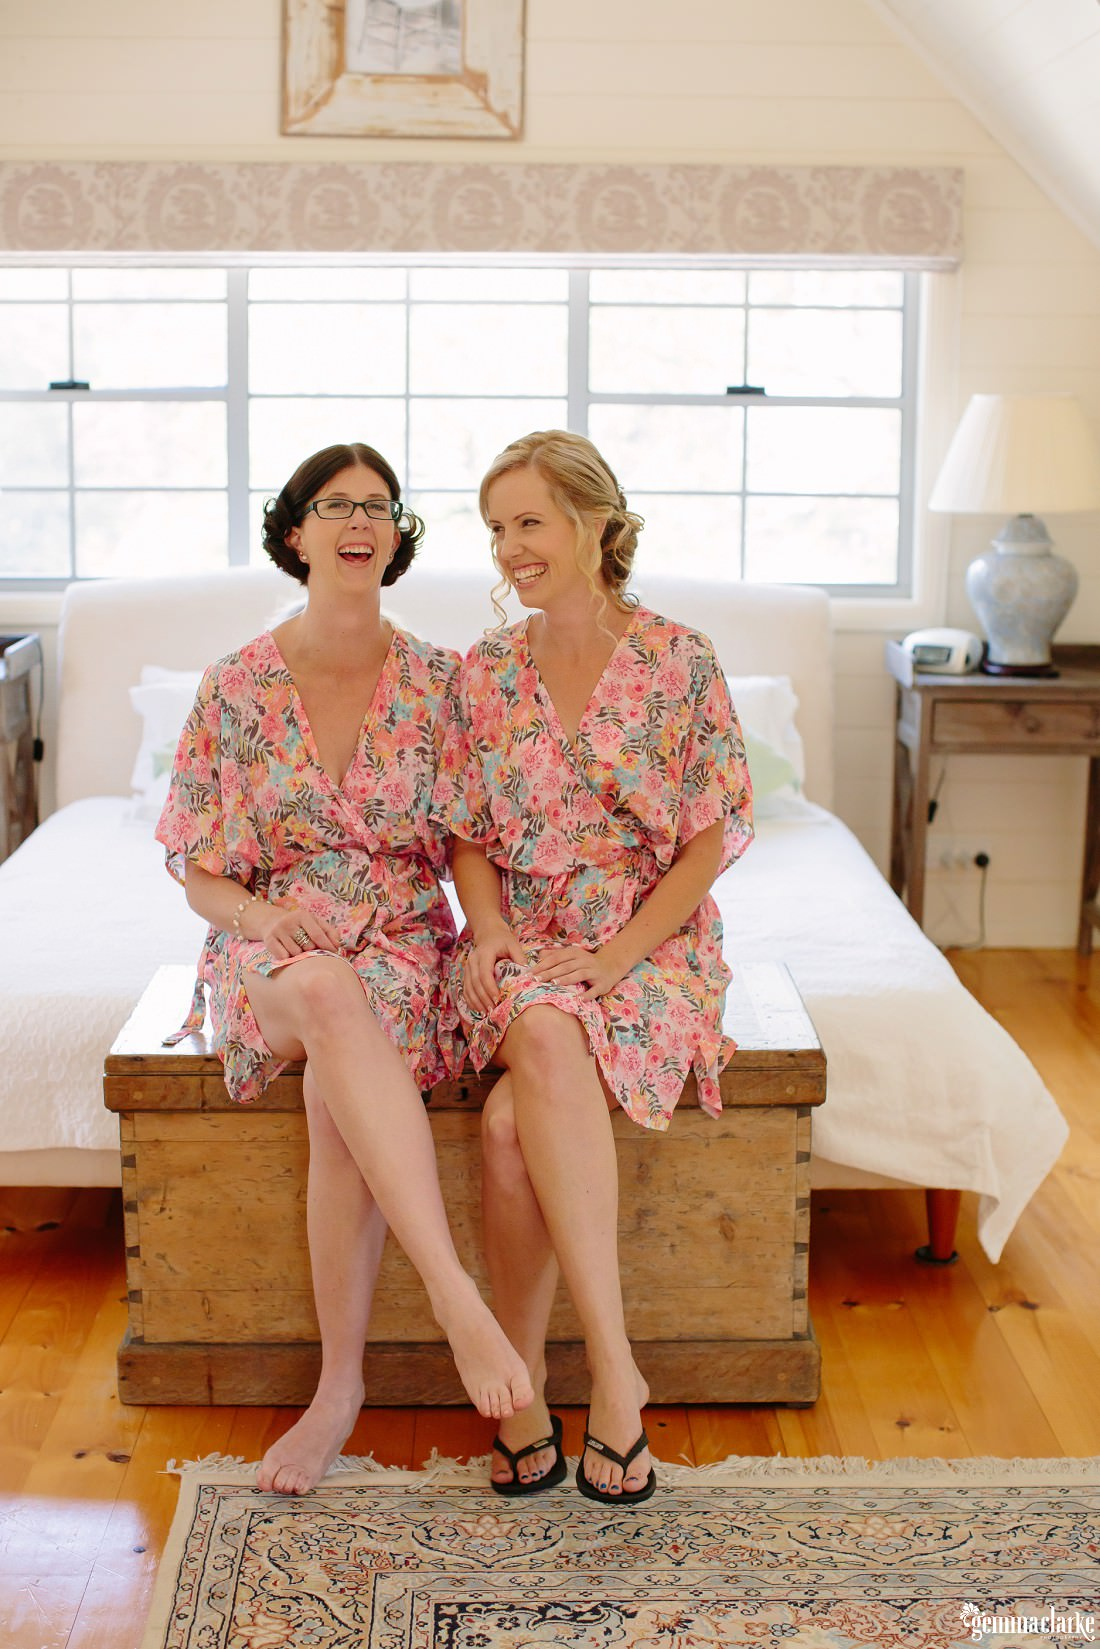 A bride and her maid of honour in matching floral robes sitting and laughing together